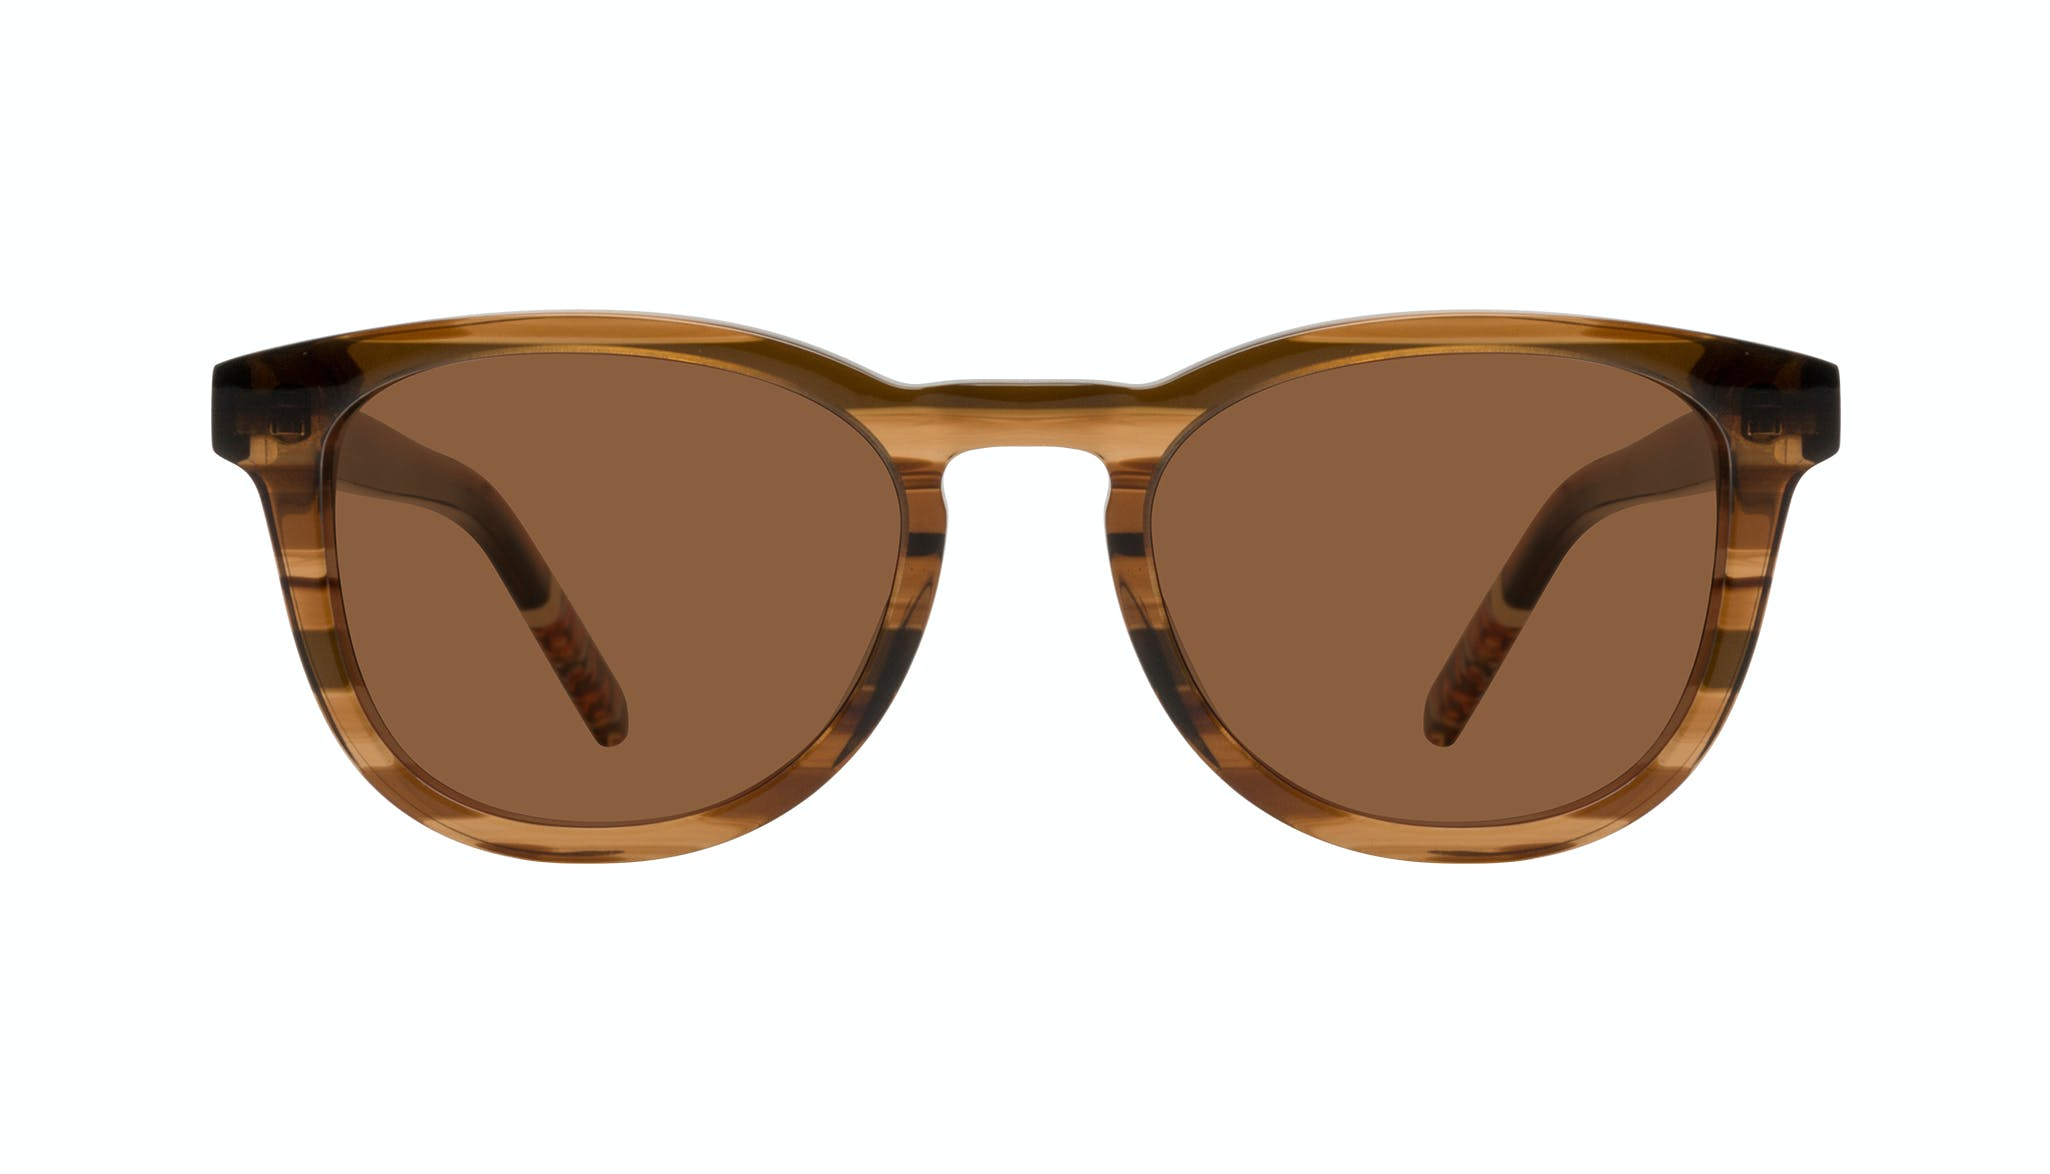 Affordable Fashion Glasses Round Sunglasses Men Goal Smokey Havana